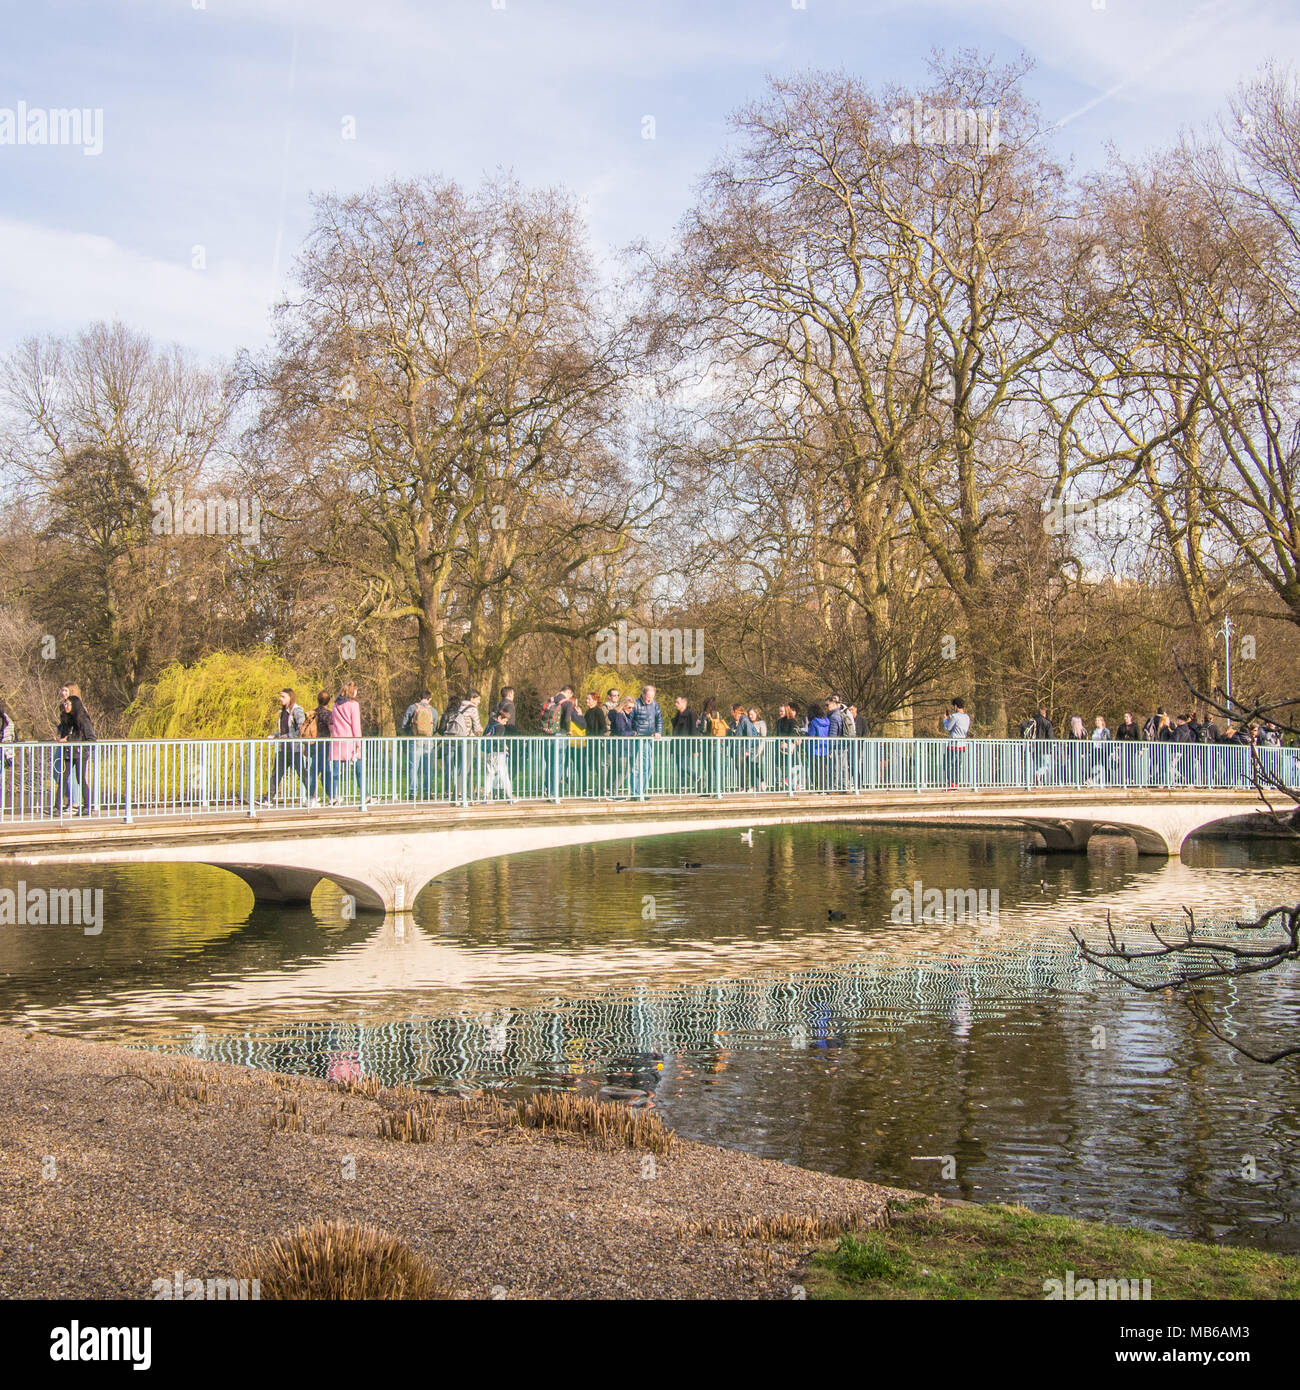 St James's Park, London, England Stock Photo